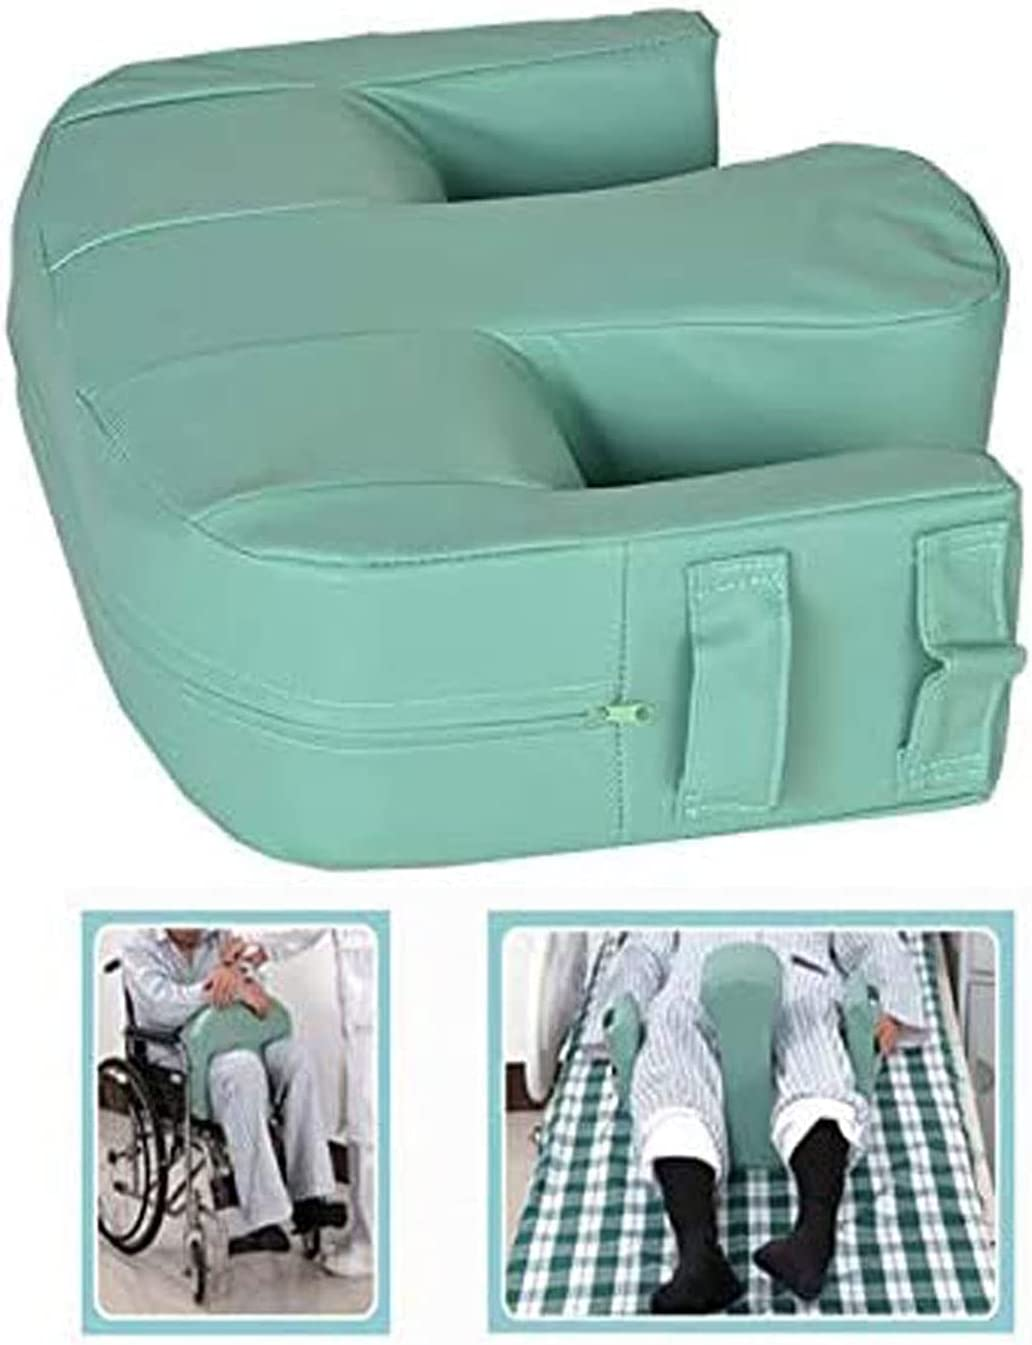 Patient Turning Baltimore Mall Device PU Leather Baltimore Mall Multifunctional